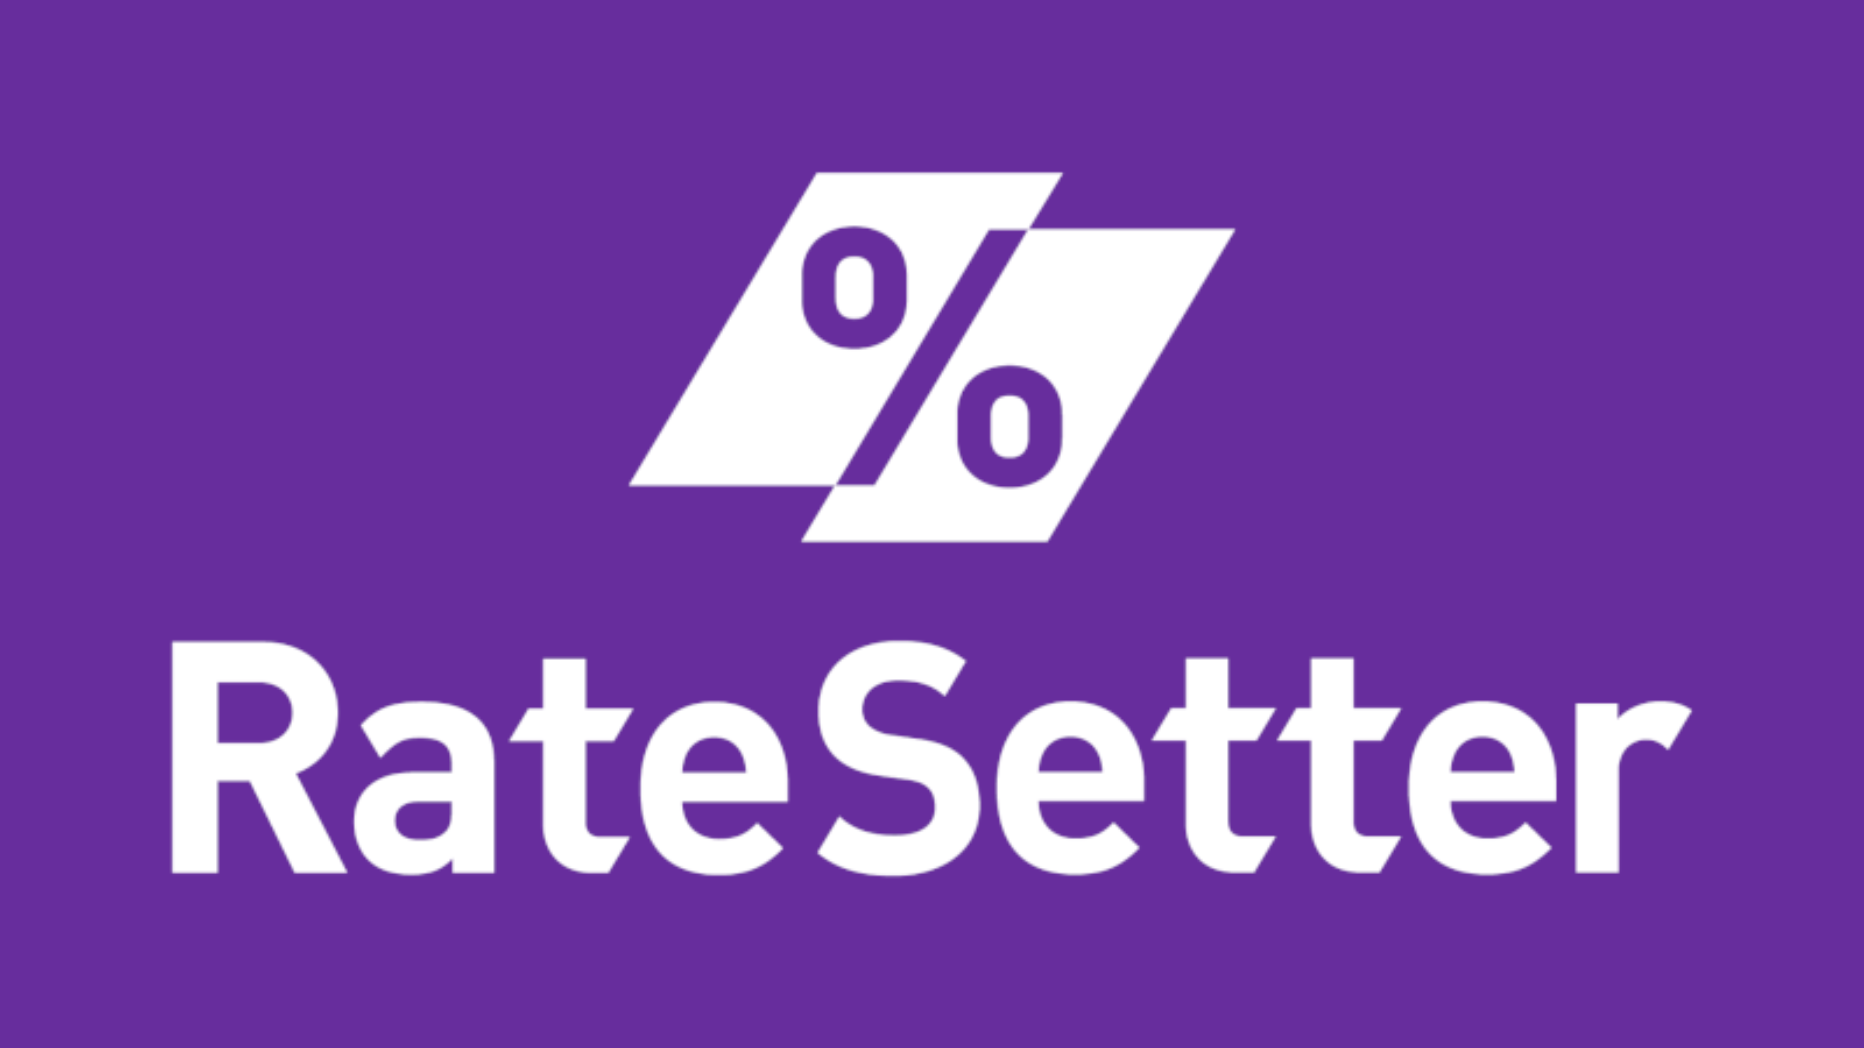 RateSetter Account Information